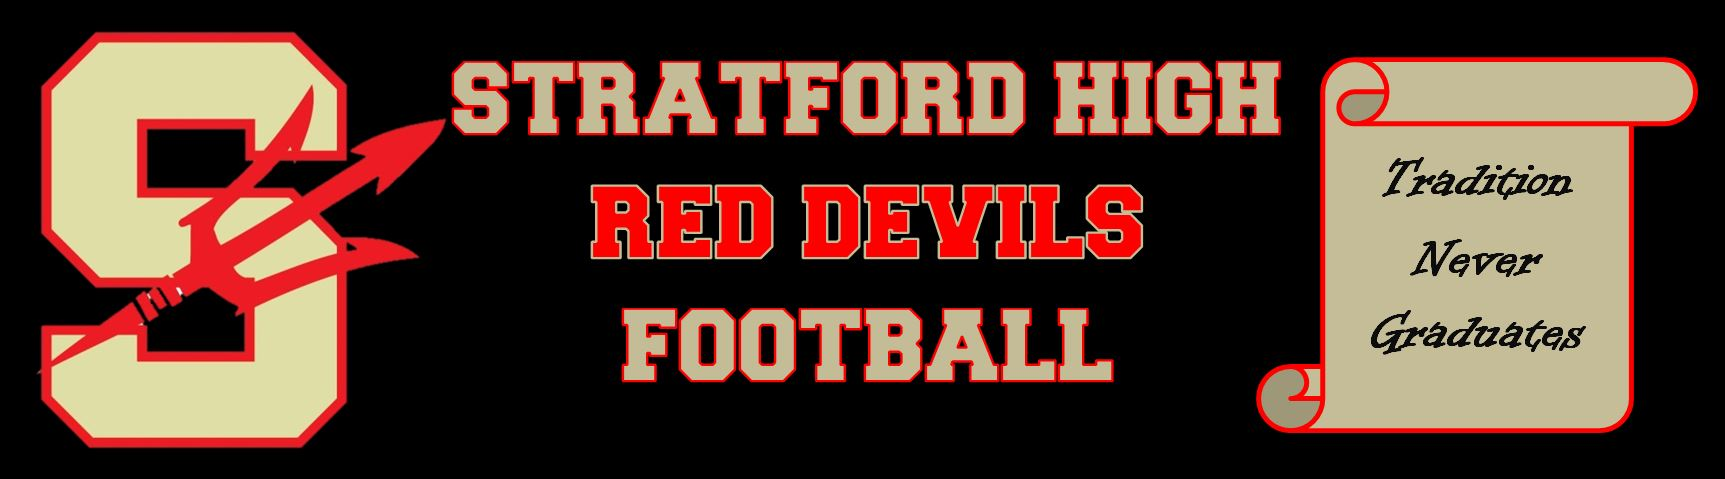 Stratford High School Football, Football, Point, Field